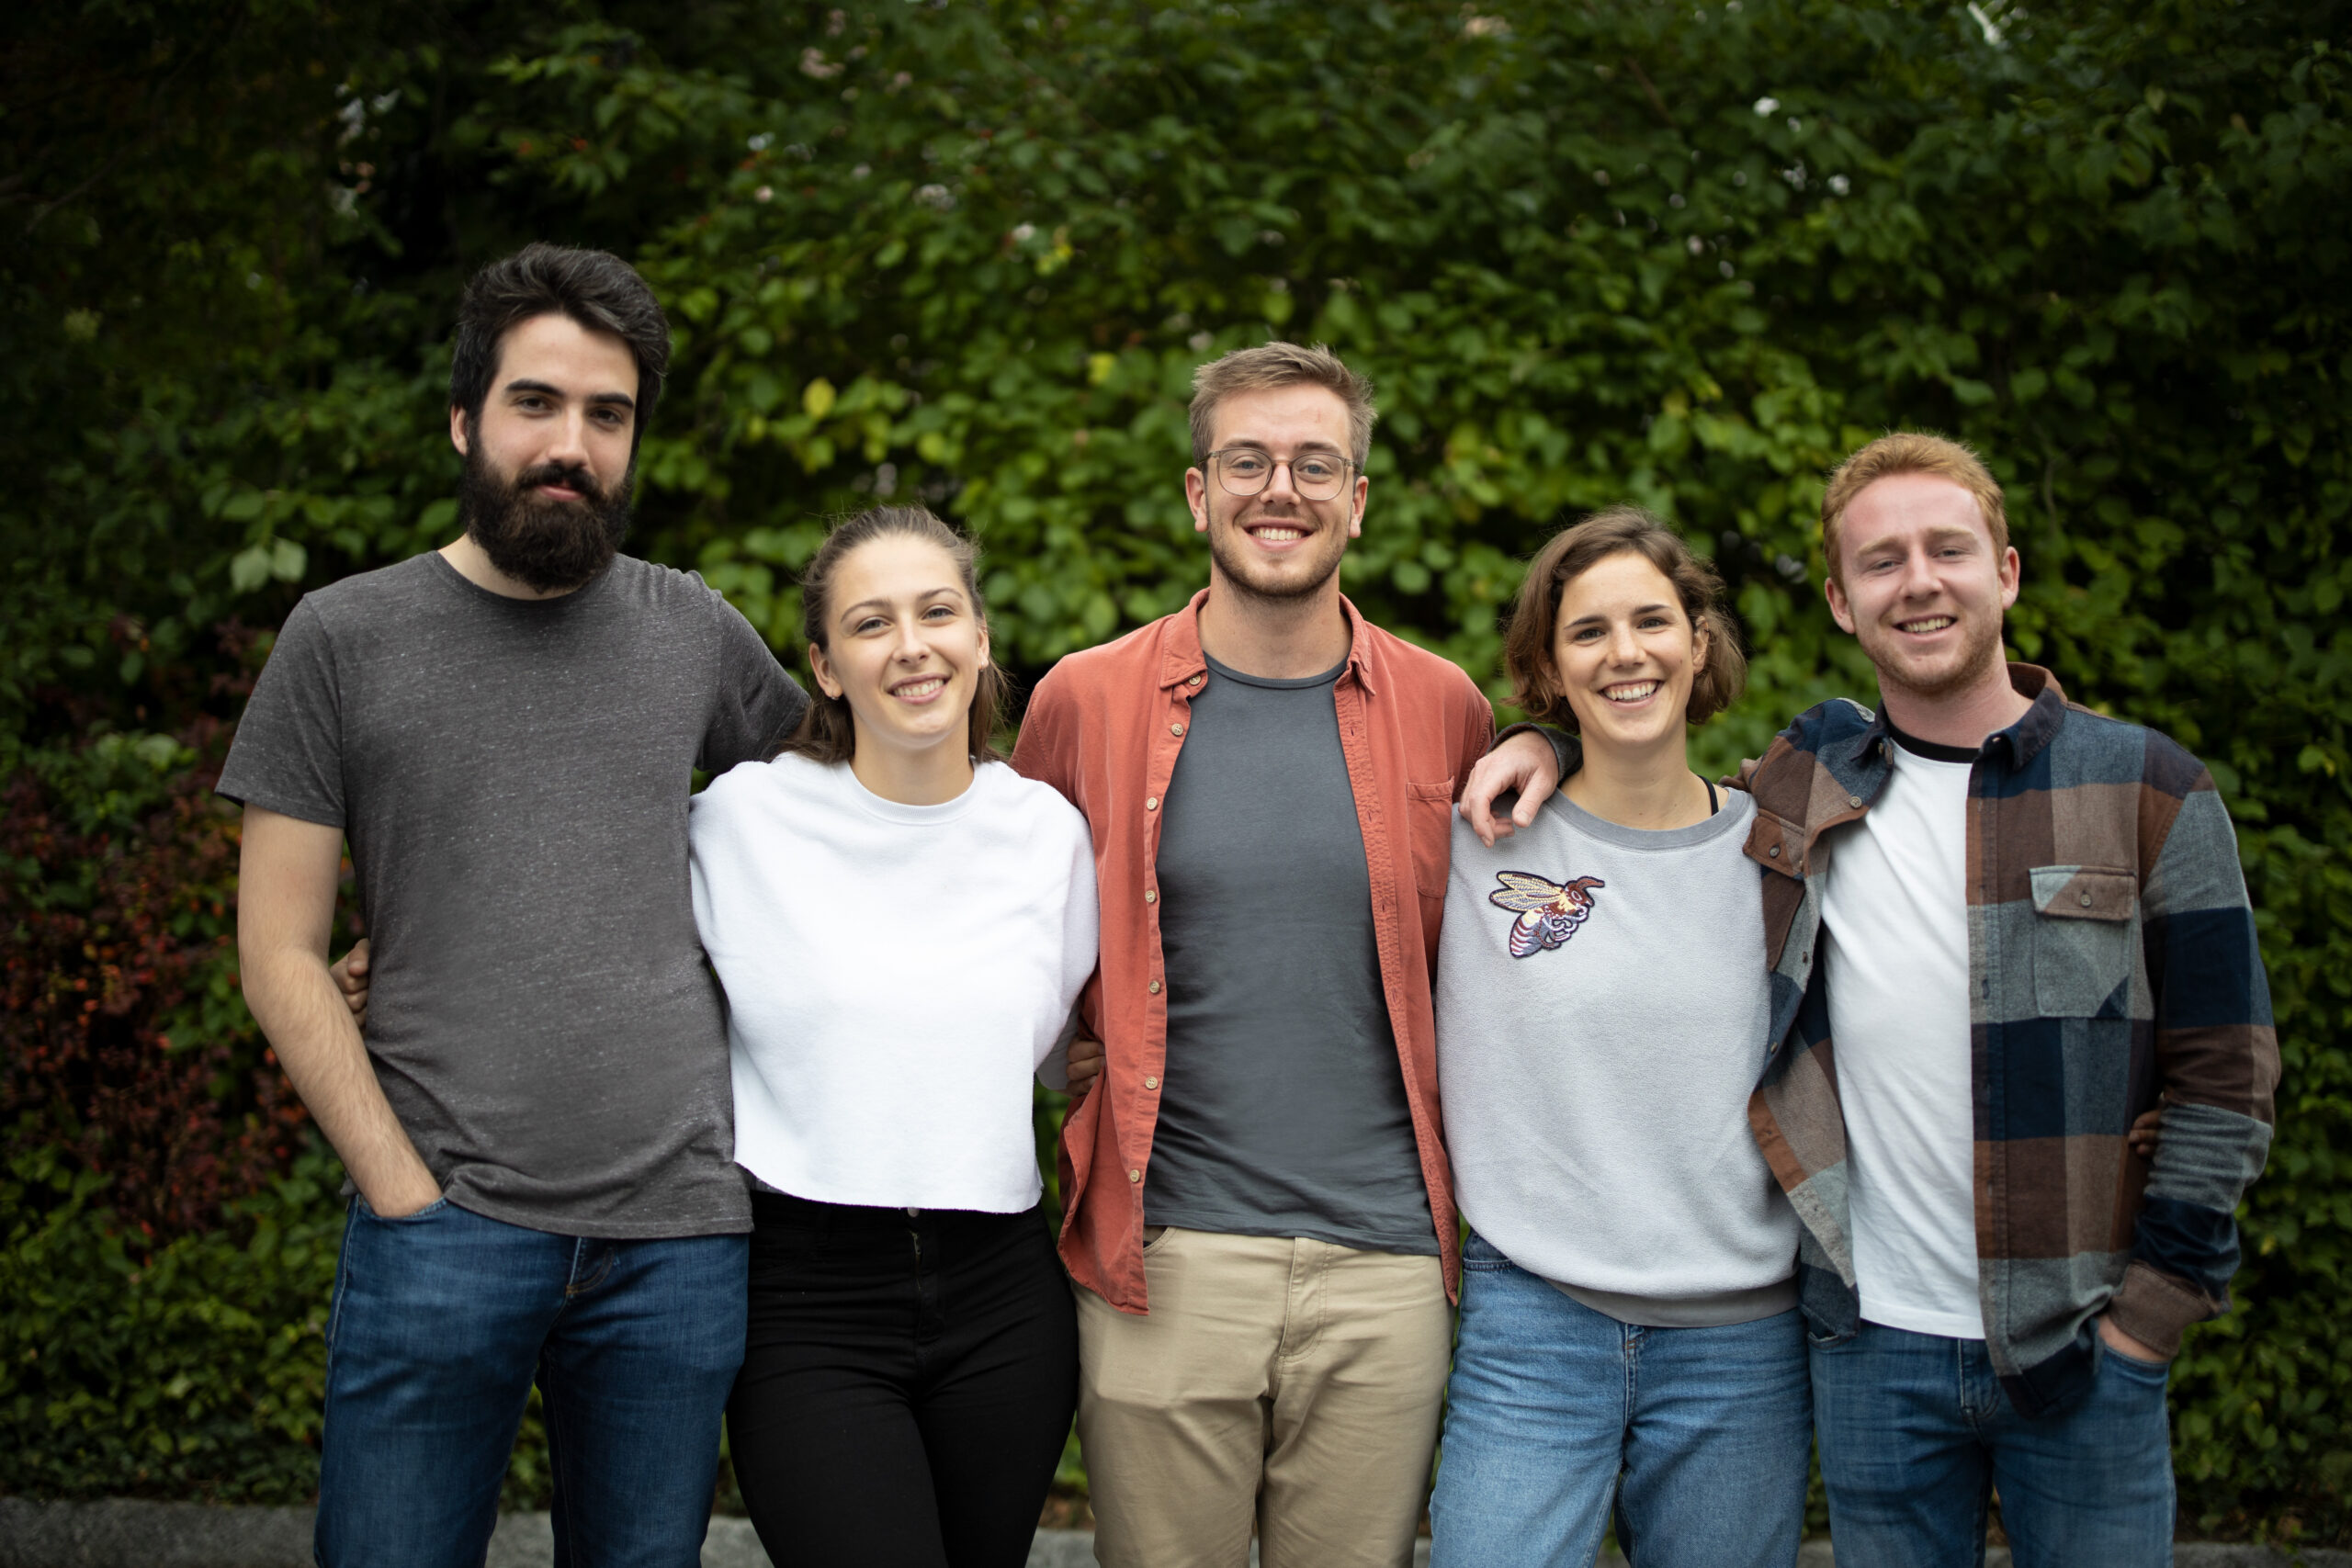 MyCabin brings shared economy values to camping